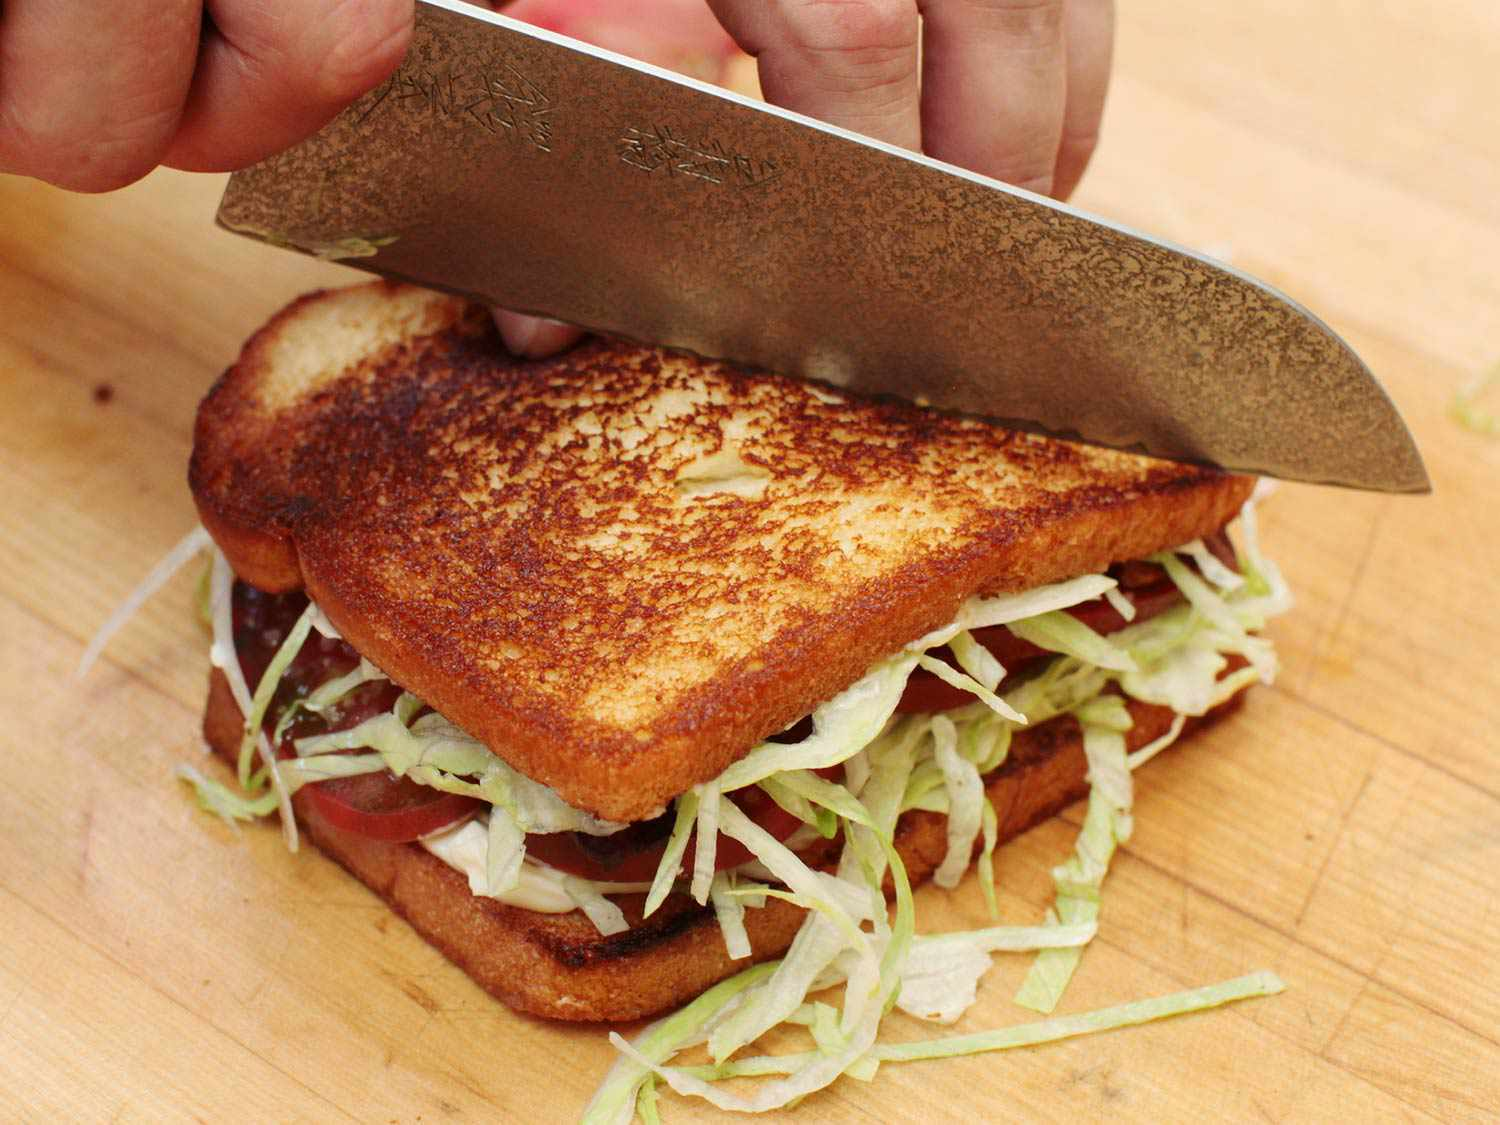 A chef's knife slicing a finished BLT sandwich in half